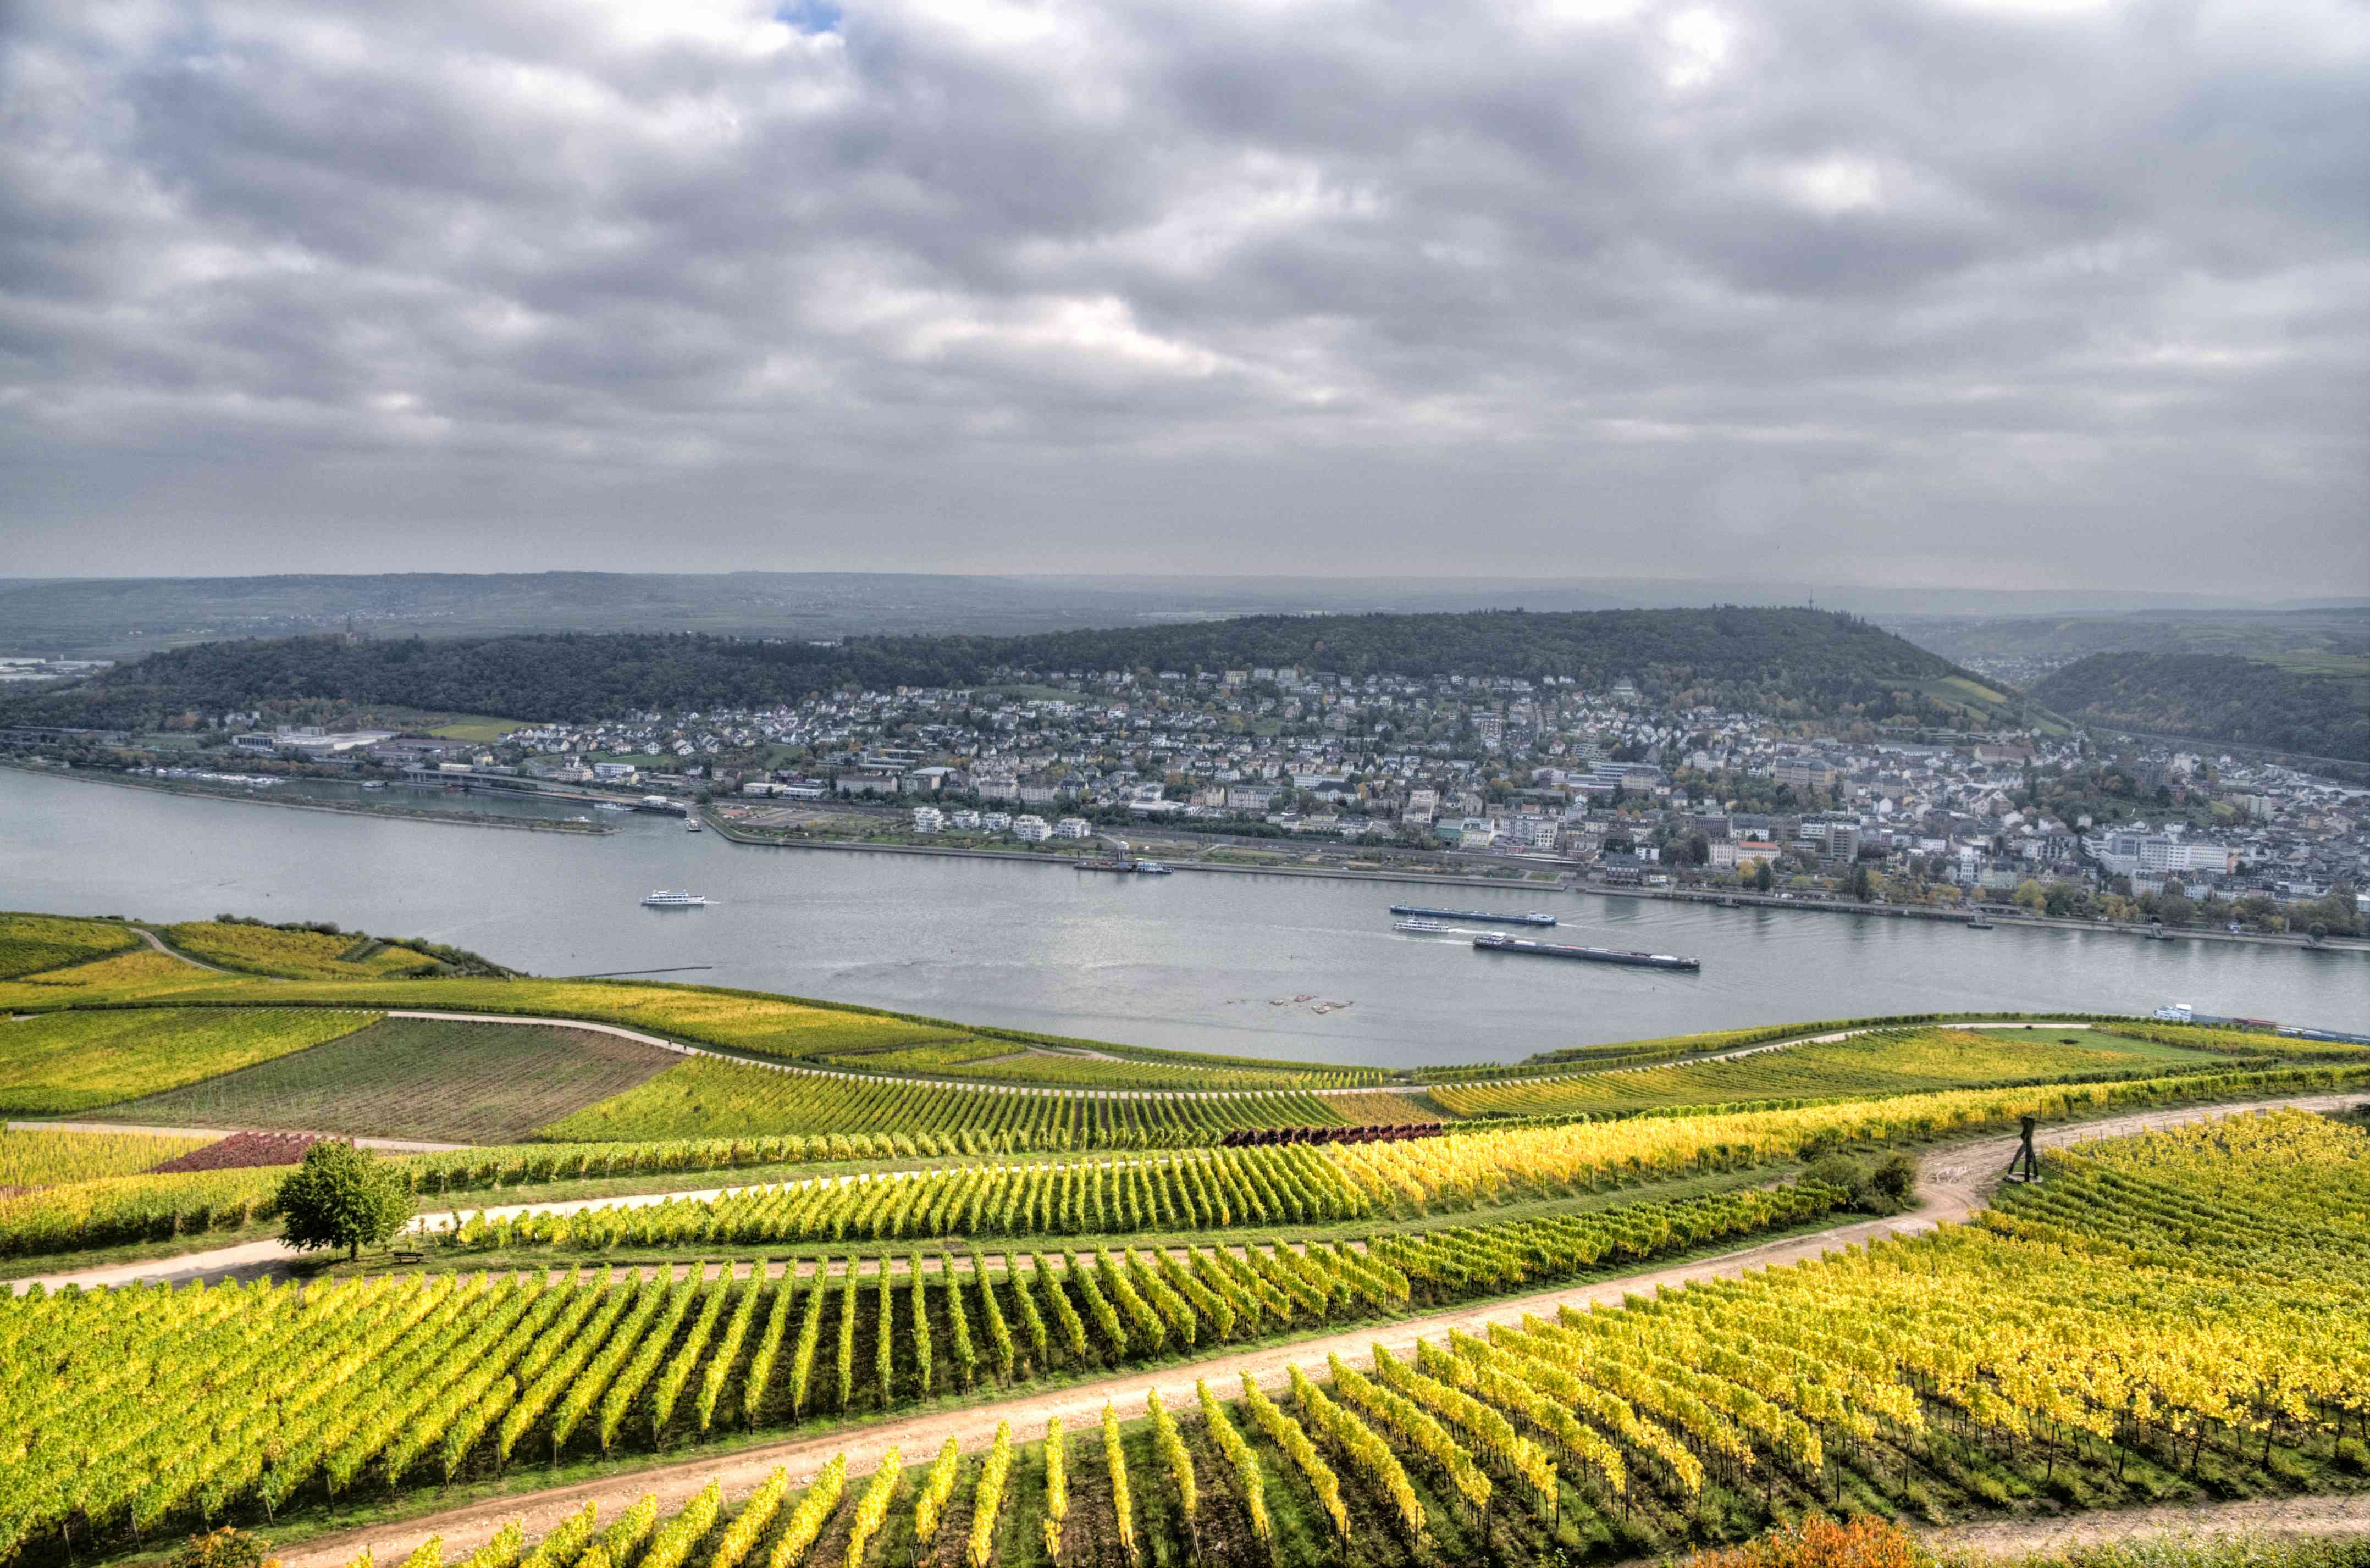 green vineyards with the Rhine river and mainz city in the distance